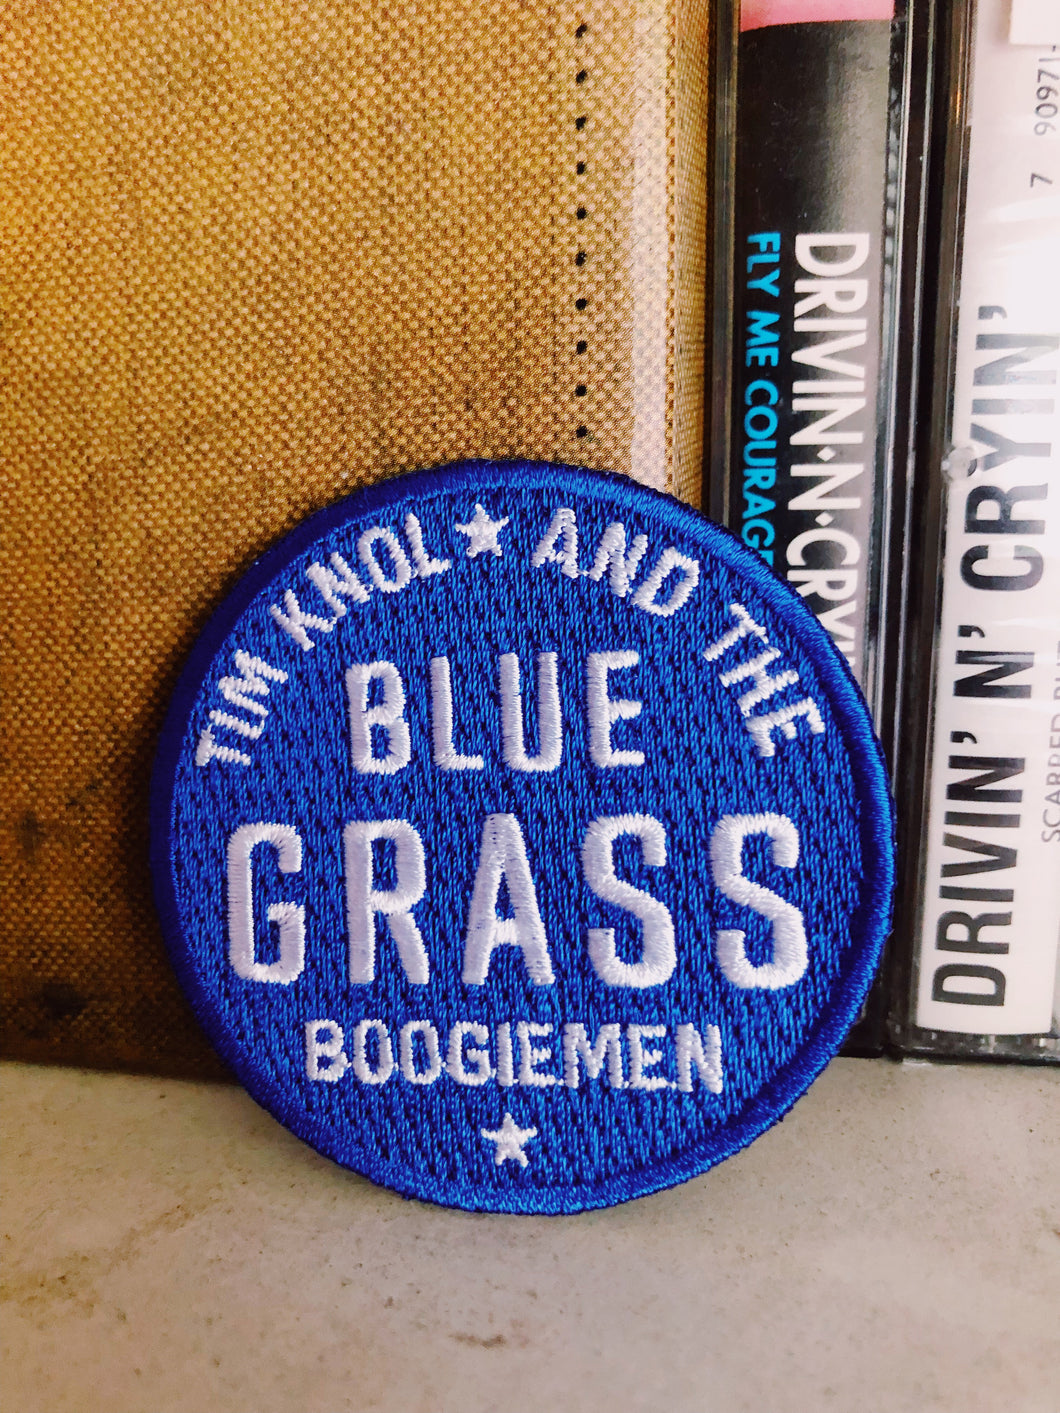 Patch Tim Knol & The Blue Grass Boogiemen